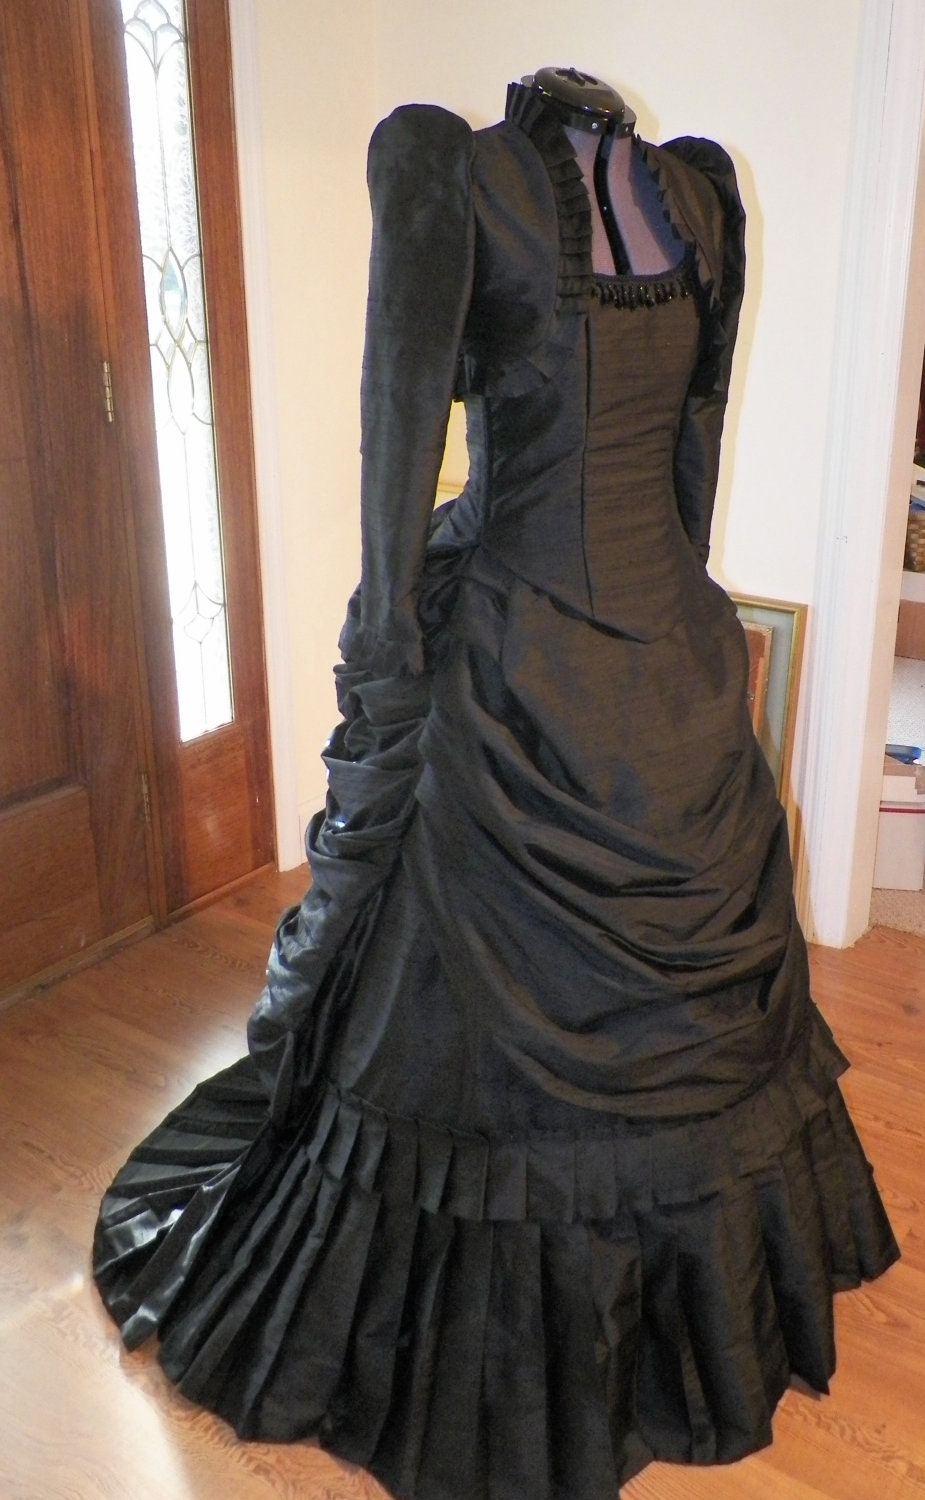 Victorian Steampunk Gothic Mardi Gras Venice Wedding Ball Gown Bustle Dress Reproduction Costume - Showbelles